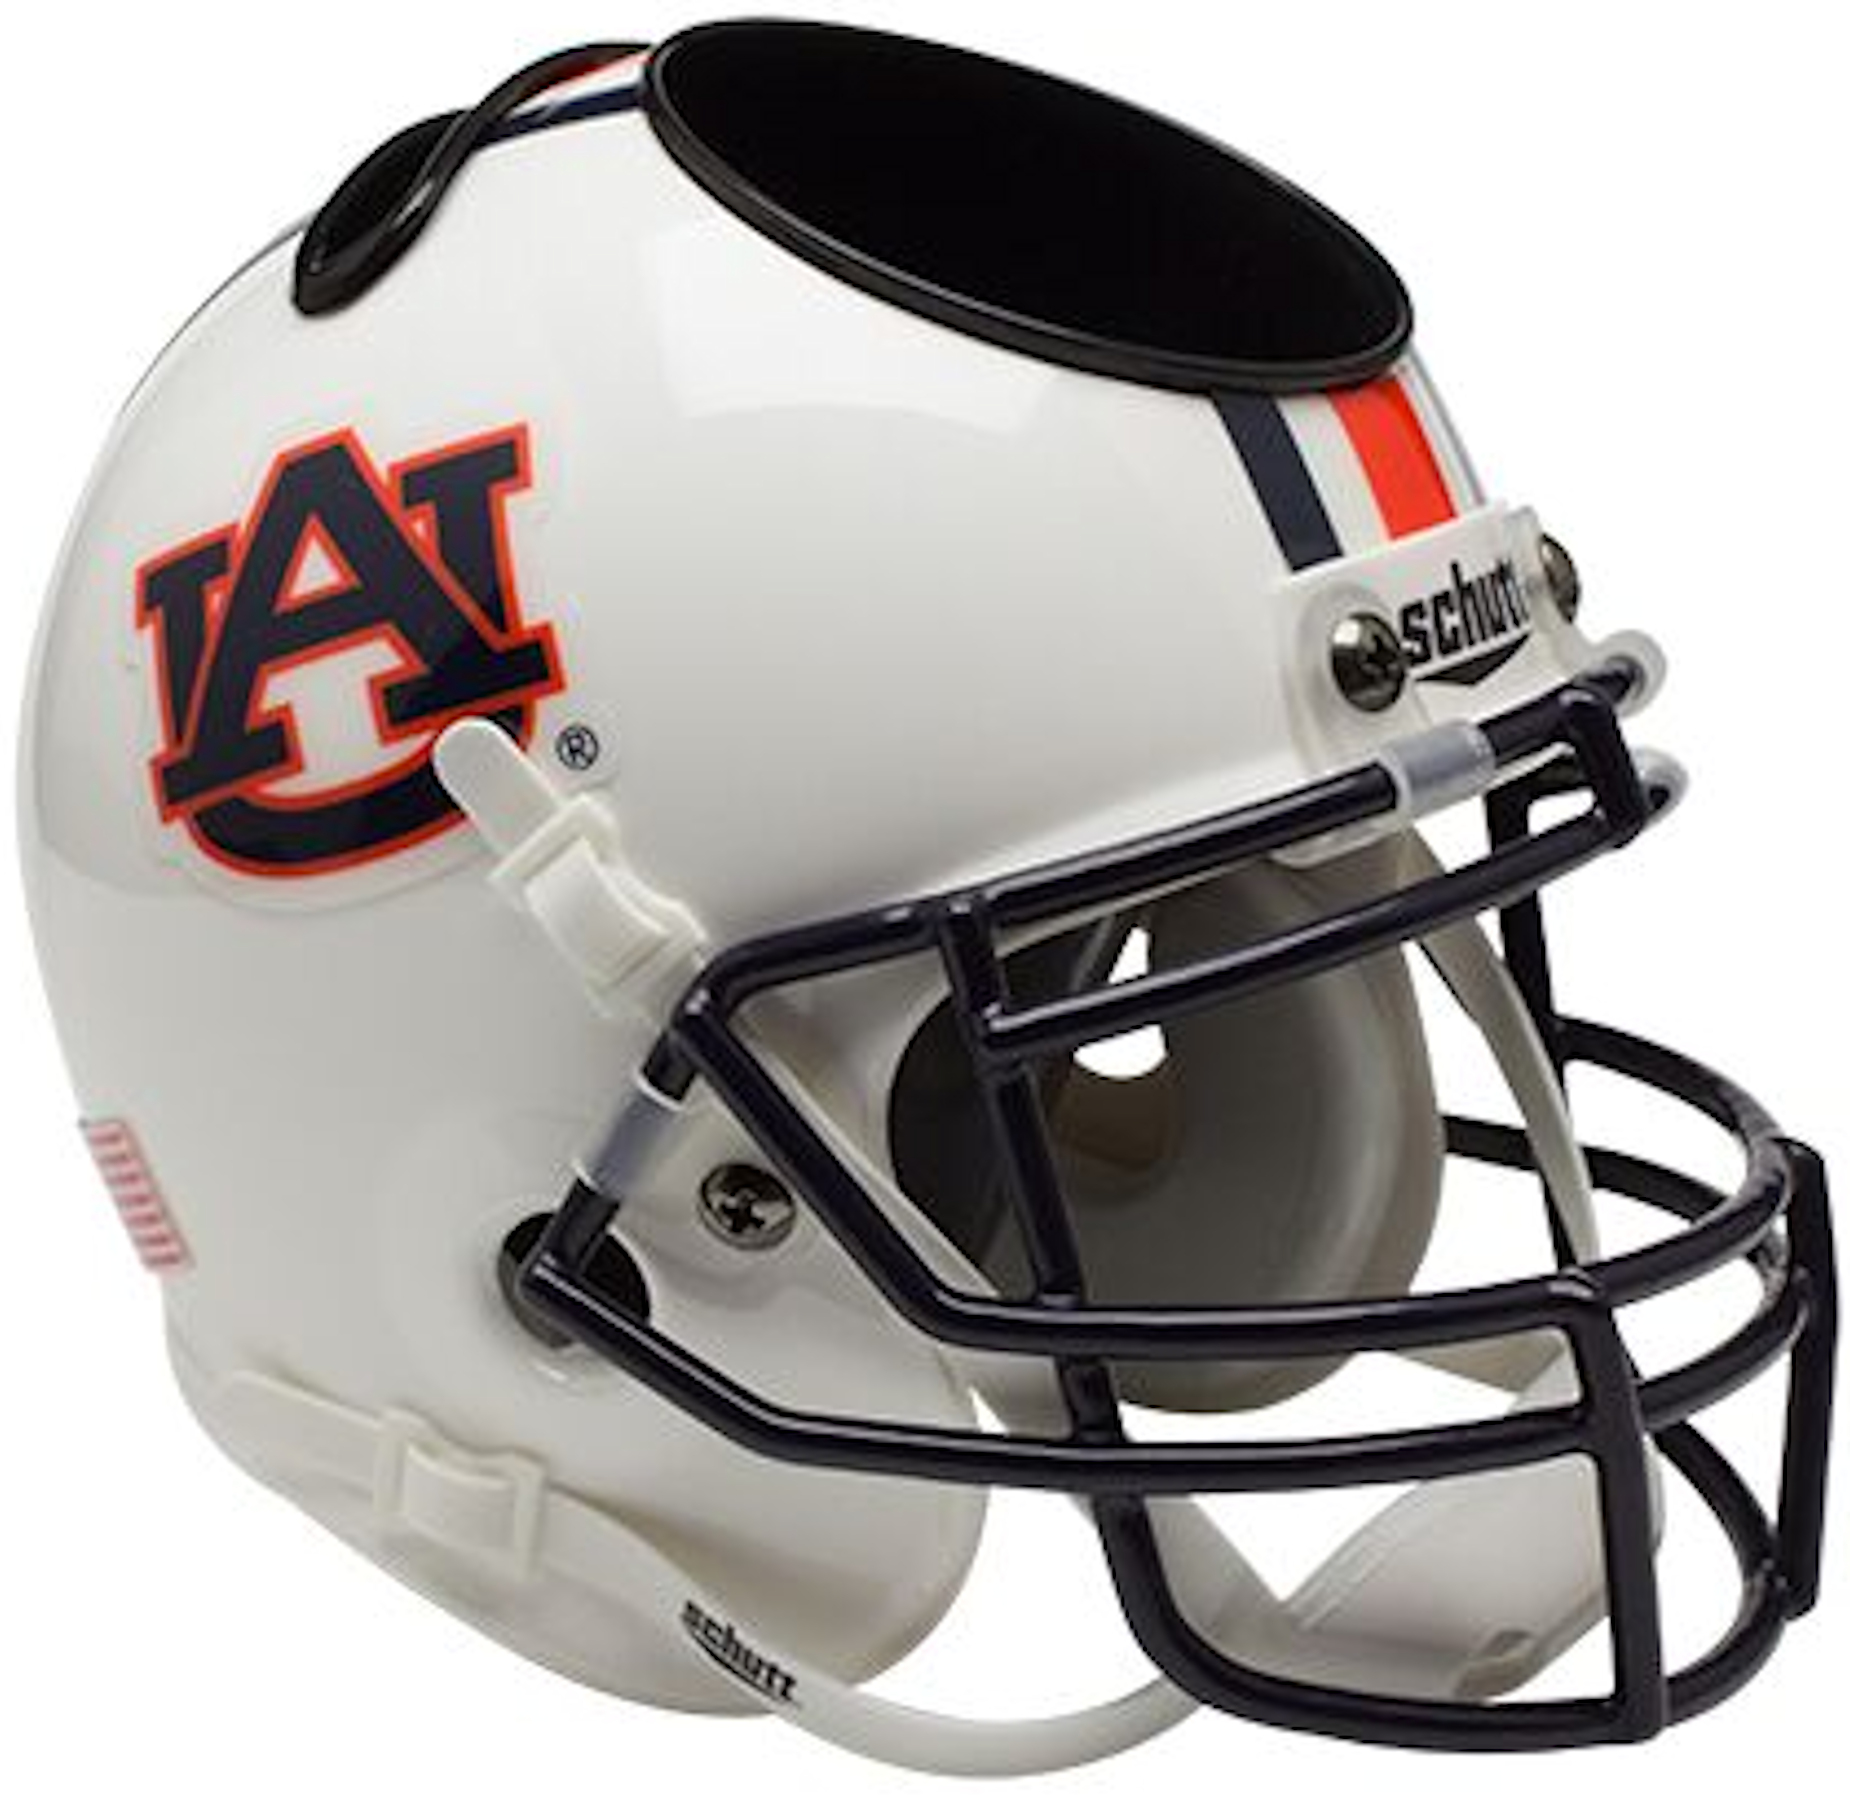 Auburn Tigers Miniature Football Helmet Desk Caddy